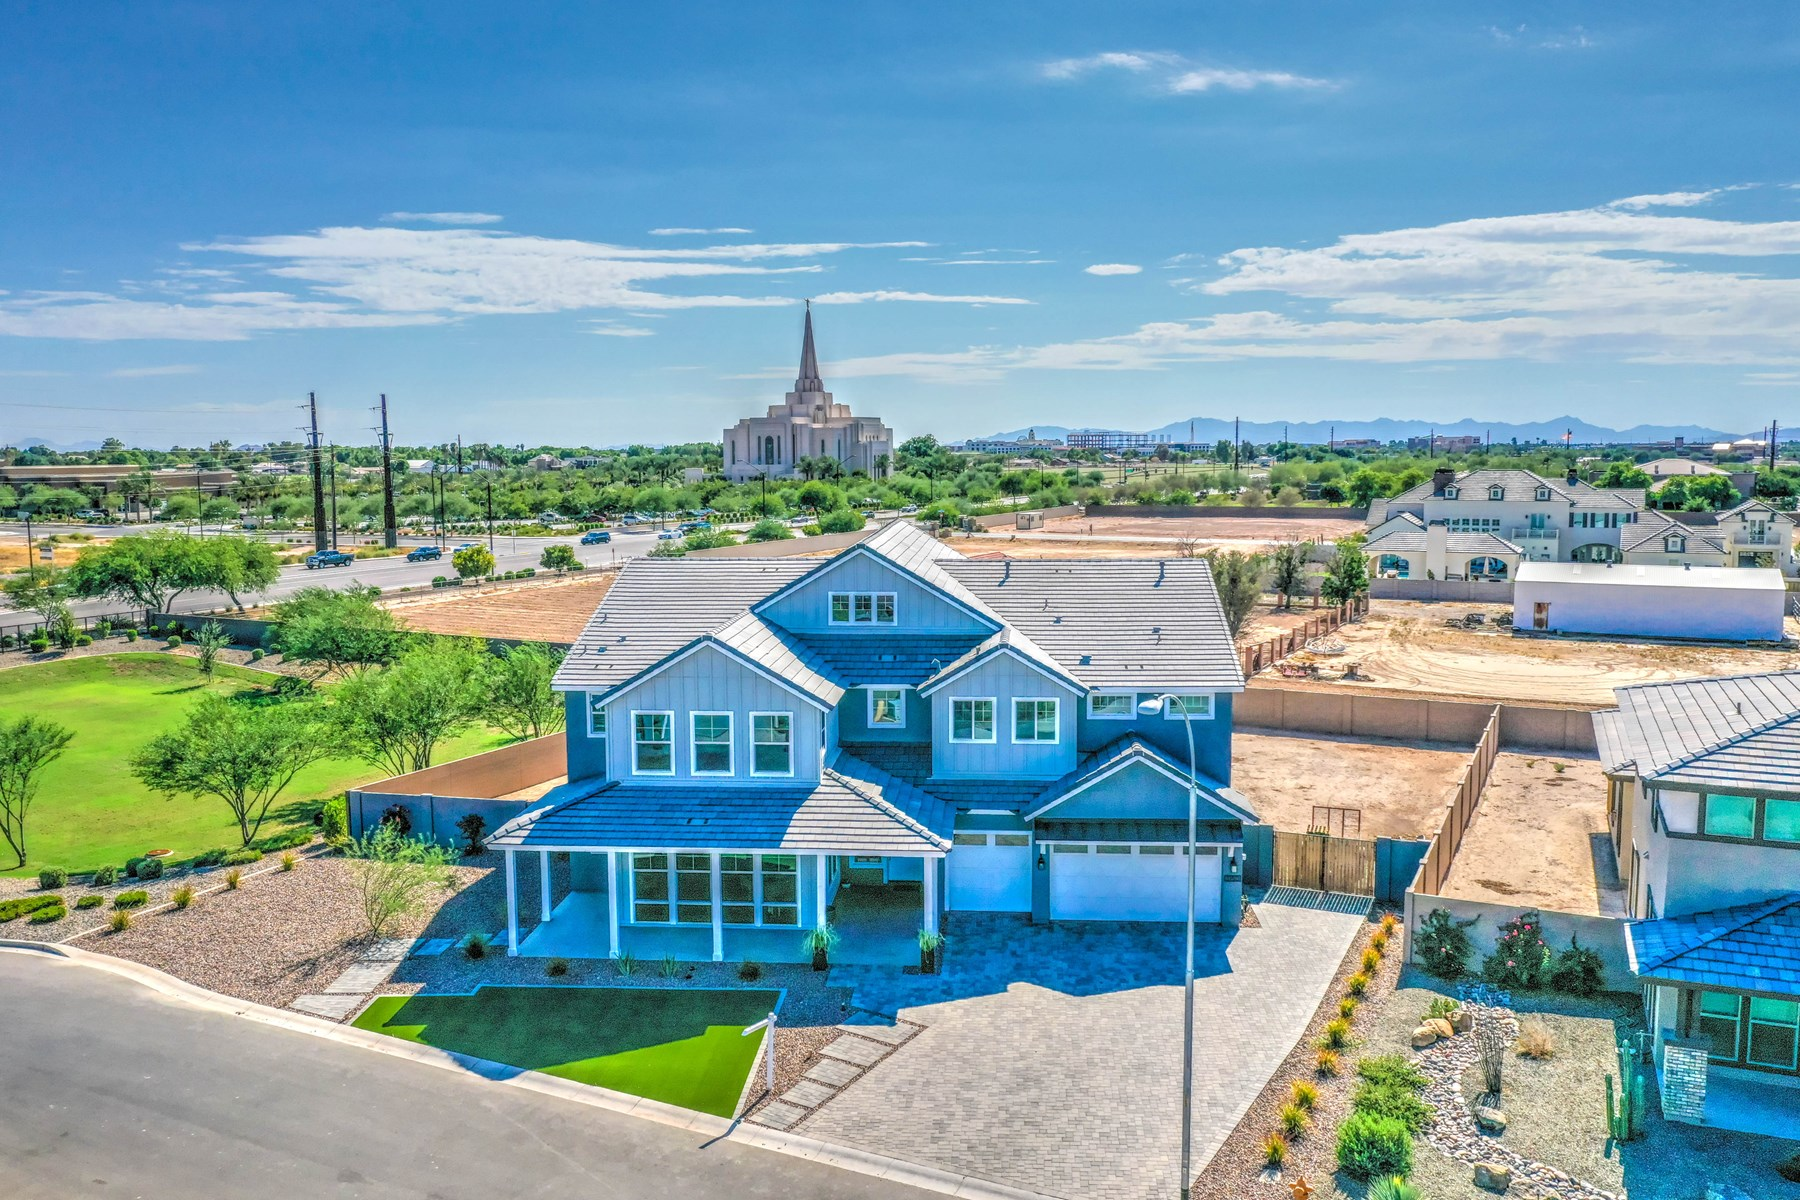 6 BED & 4 BATH ALMOST NEW HOME BY GILBERT AZ TEMPLE